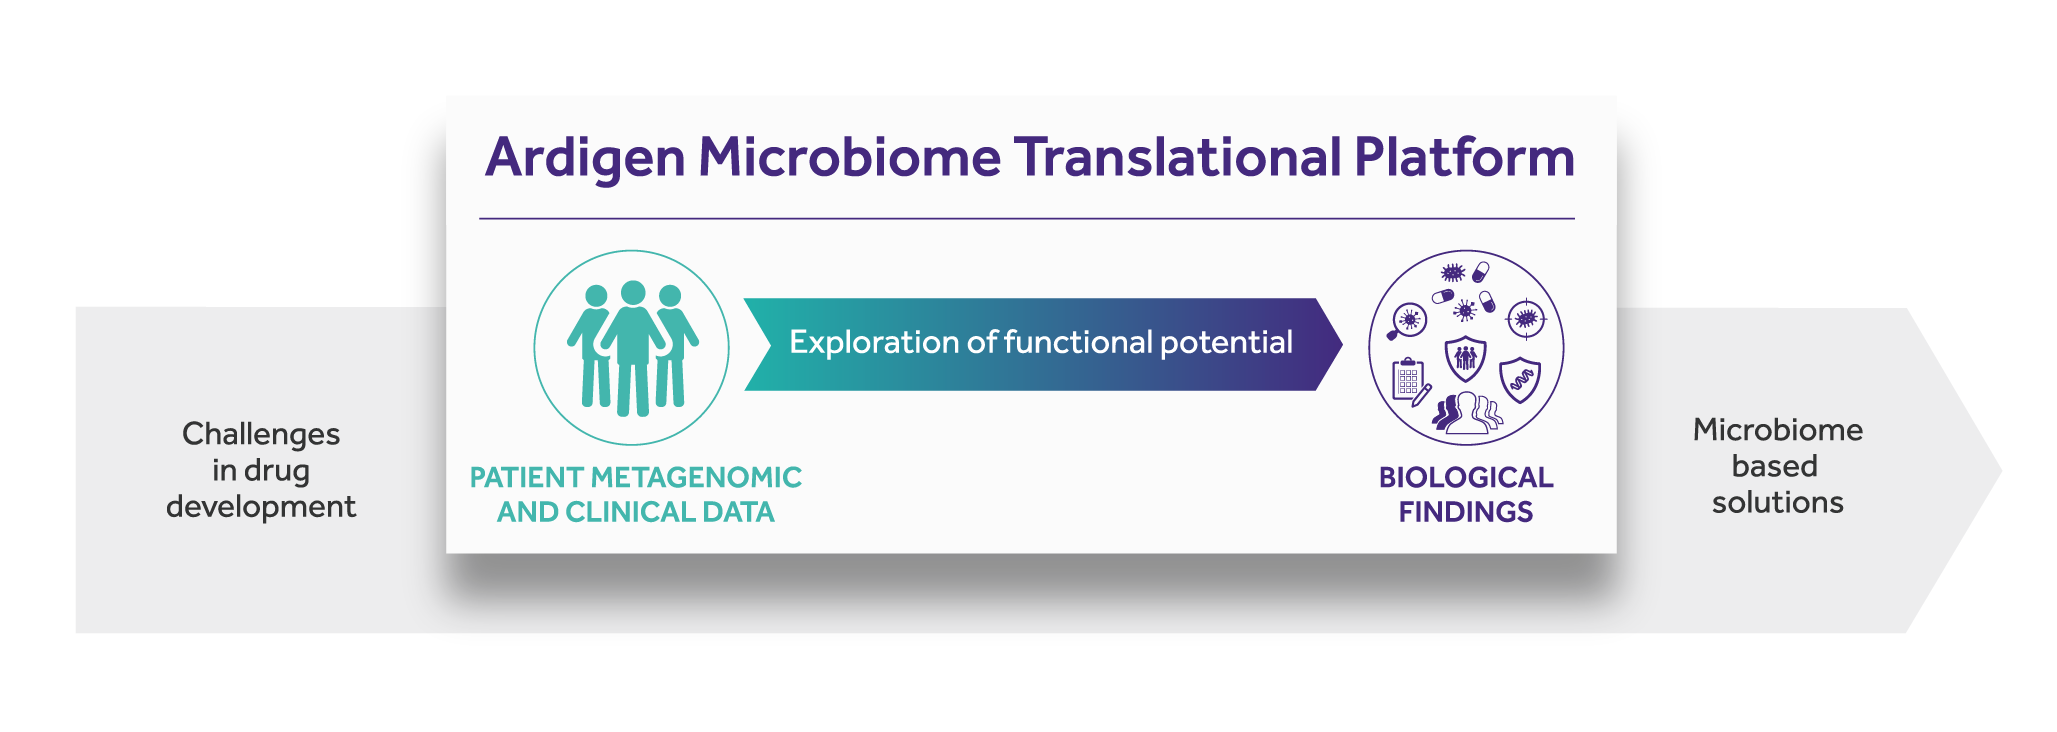 Our approach for translational microbiomics schema